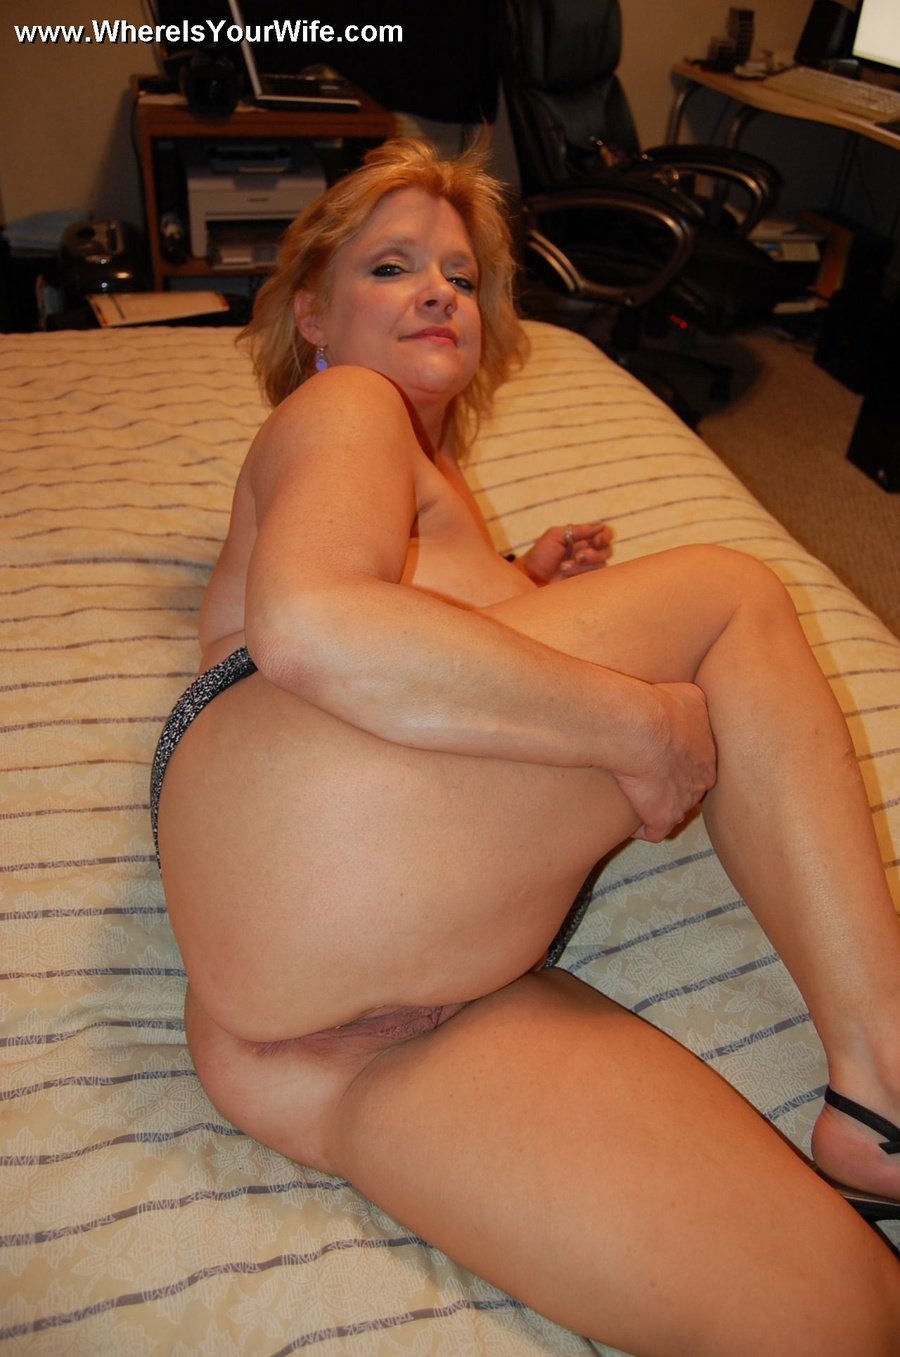 chubby mature porn pictures how do u give a blow job